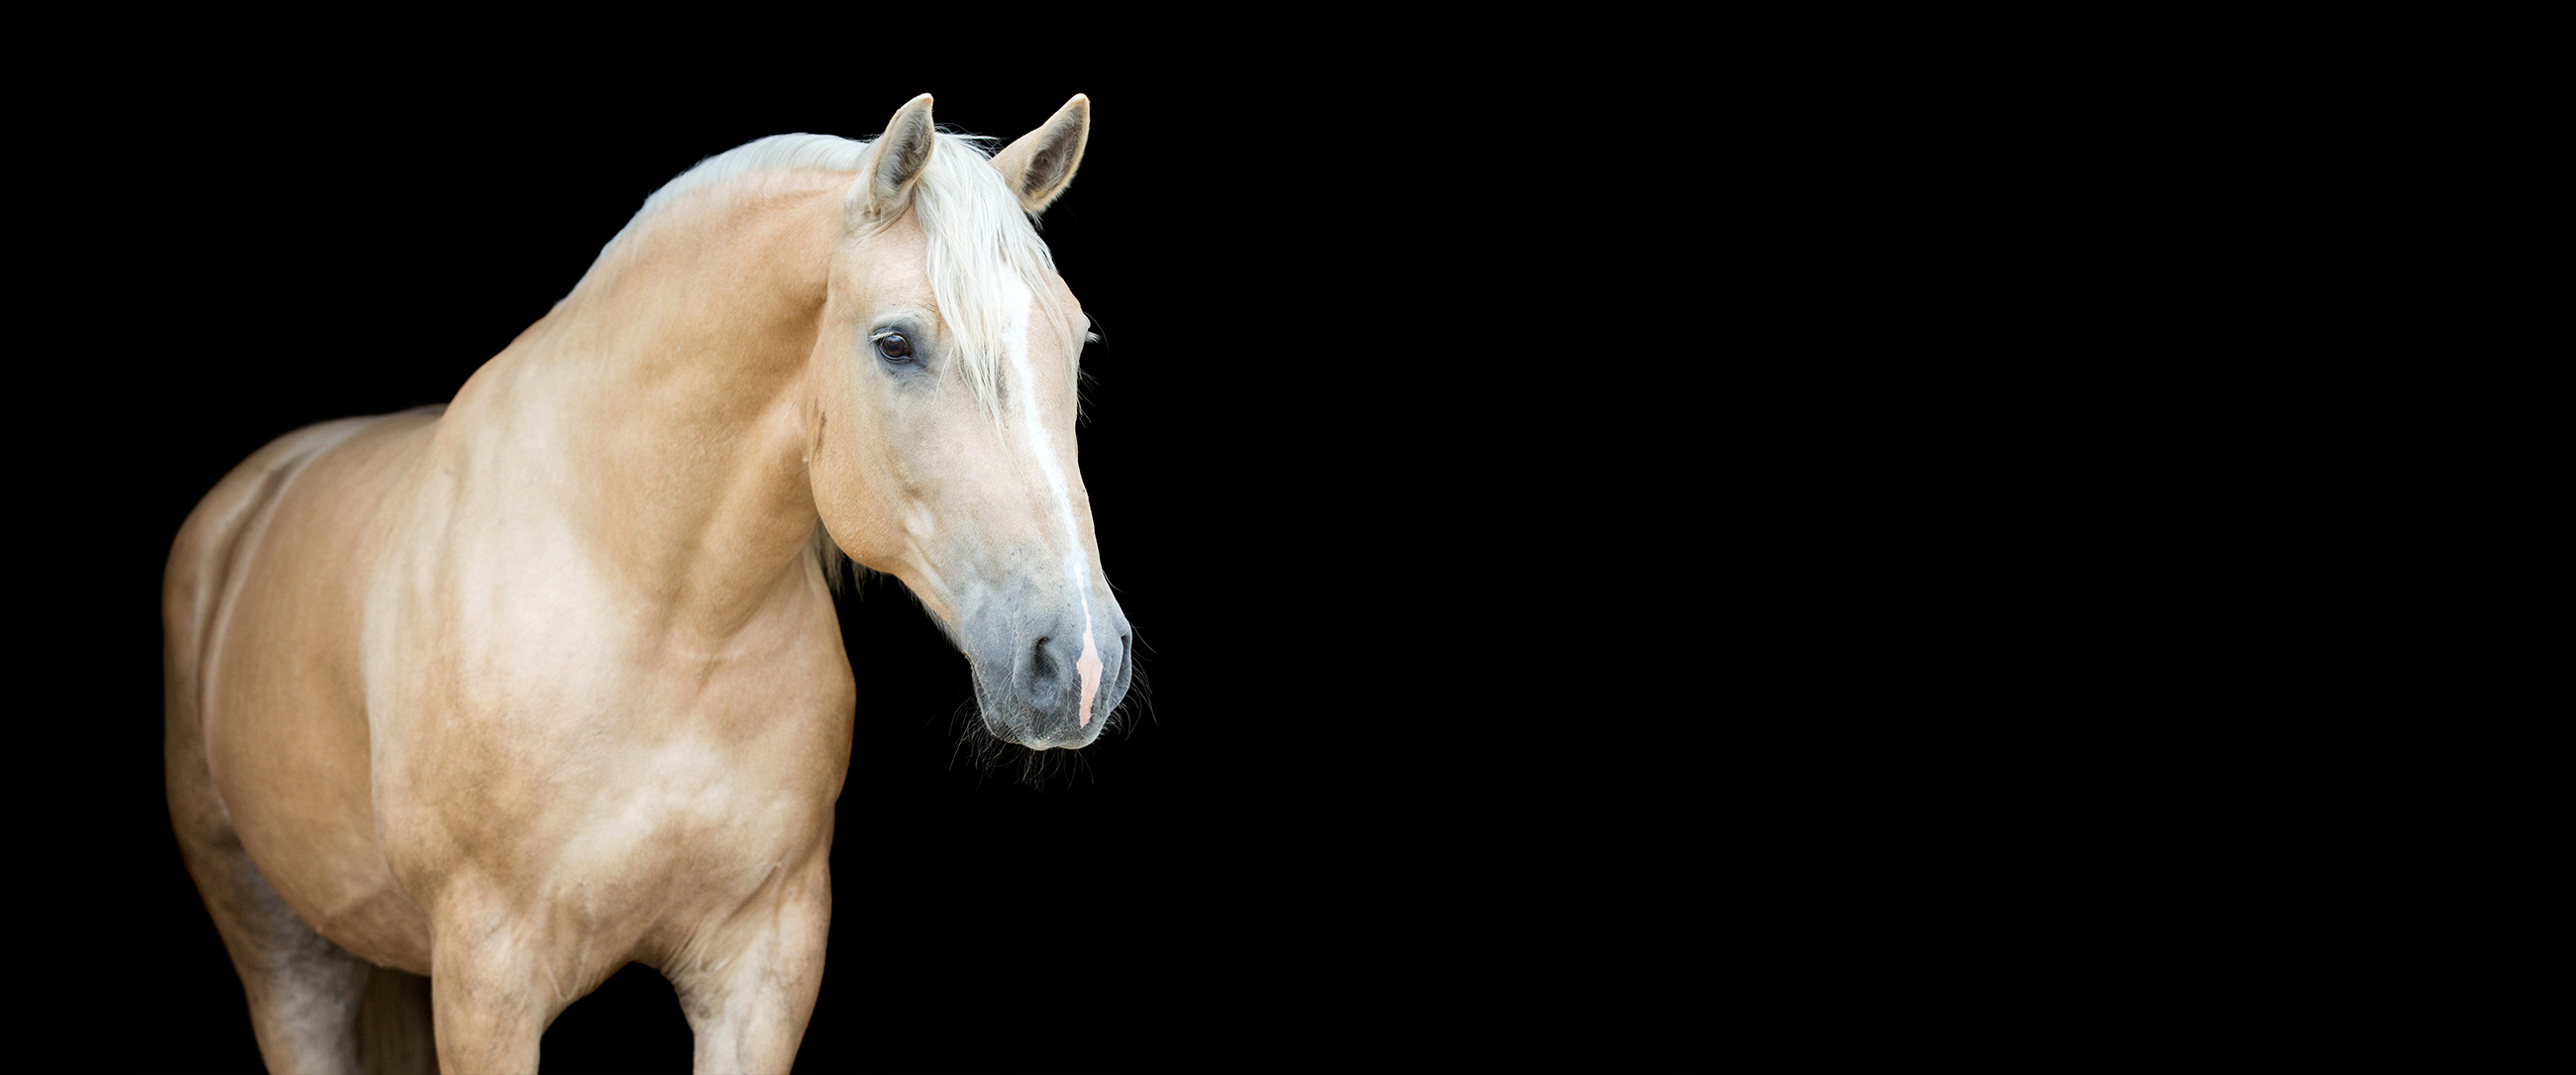 Equine Surgery and Wound Care – Home